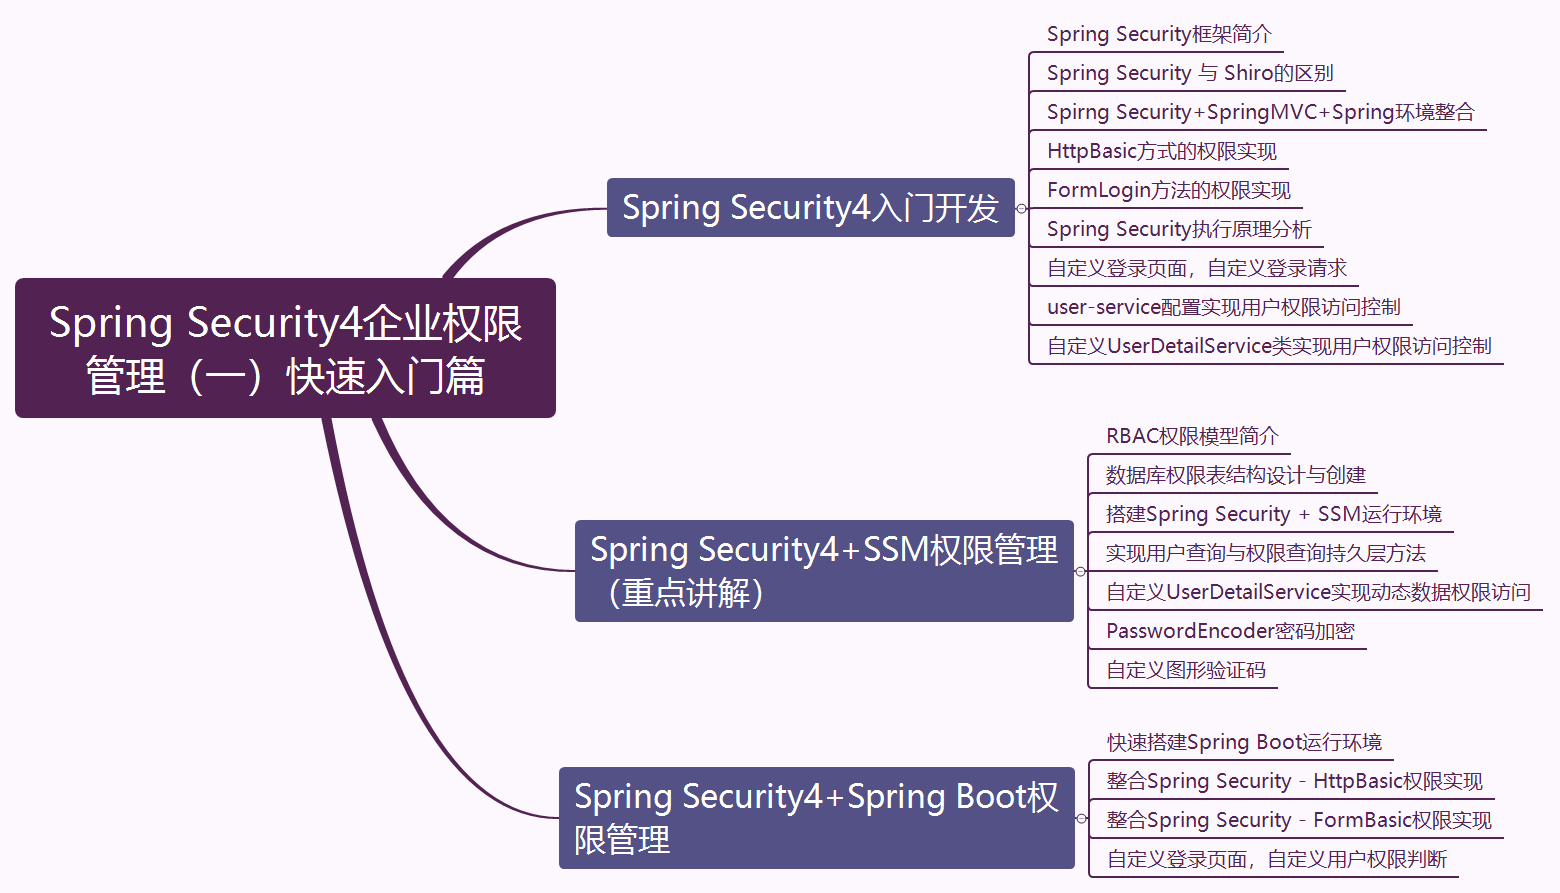 Spring Security4企业权限管理(一)快速入门篇.png